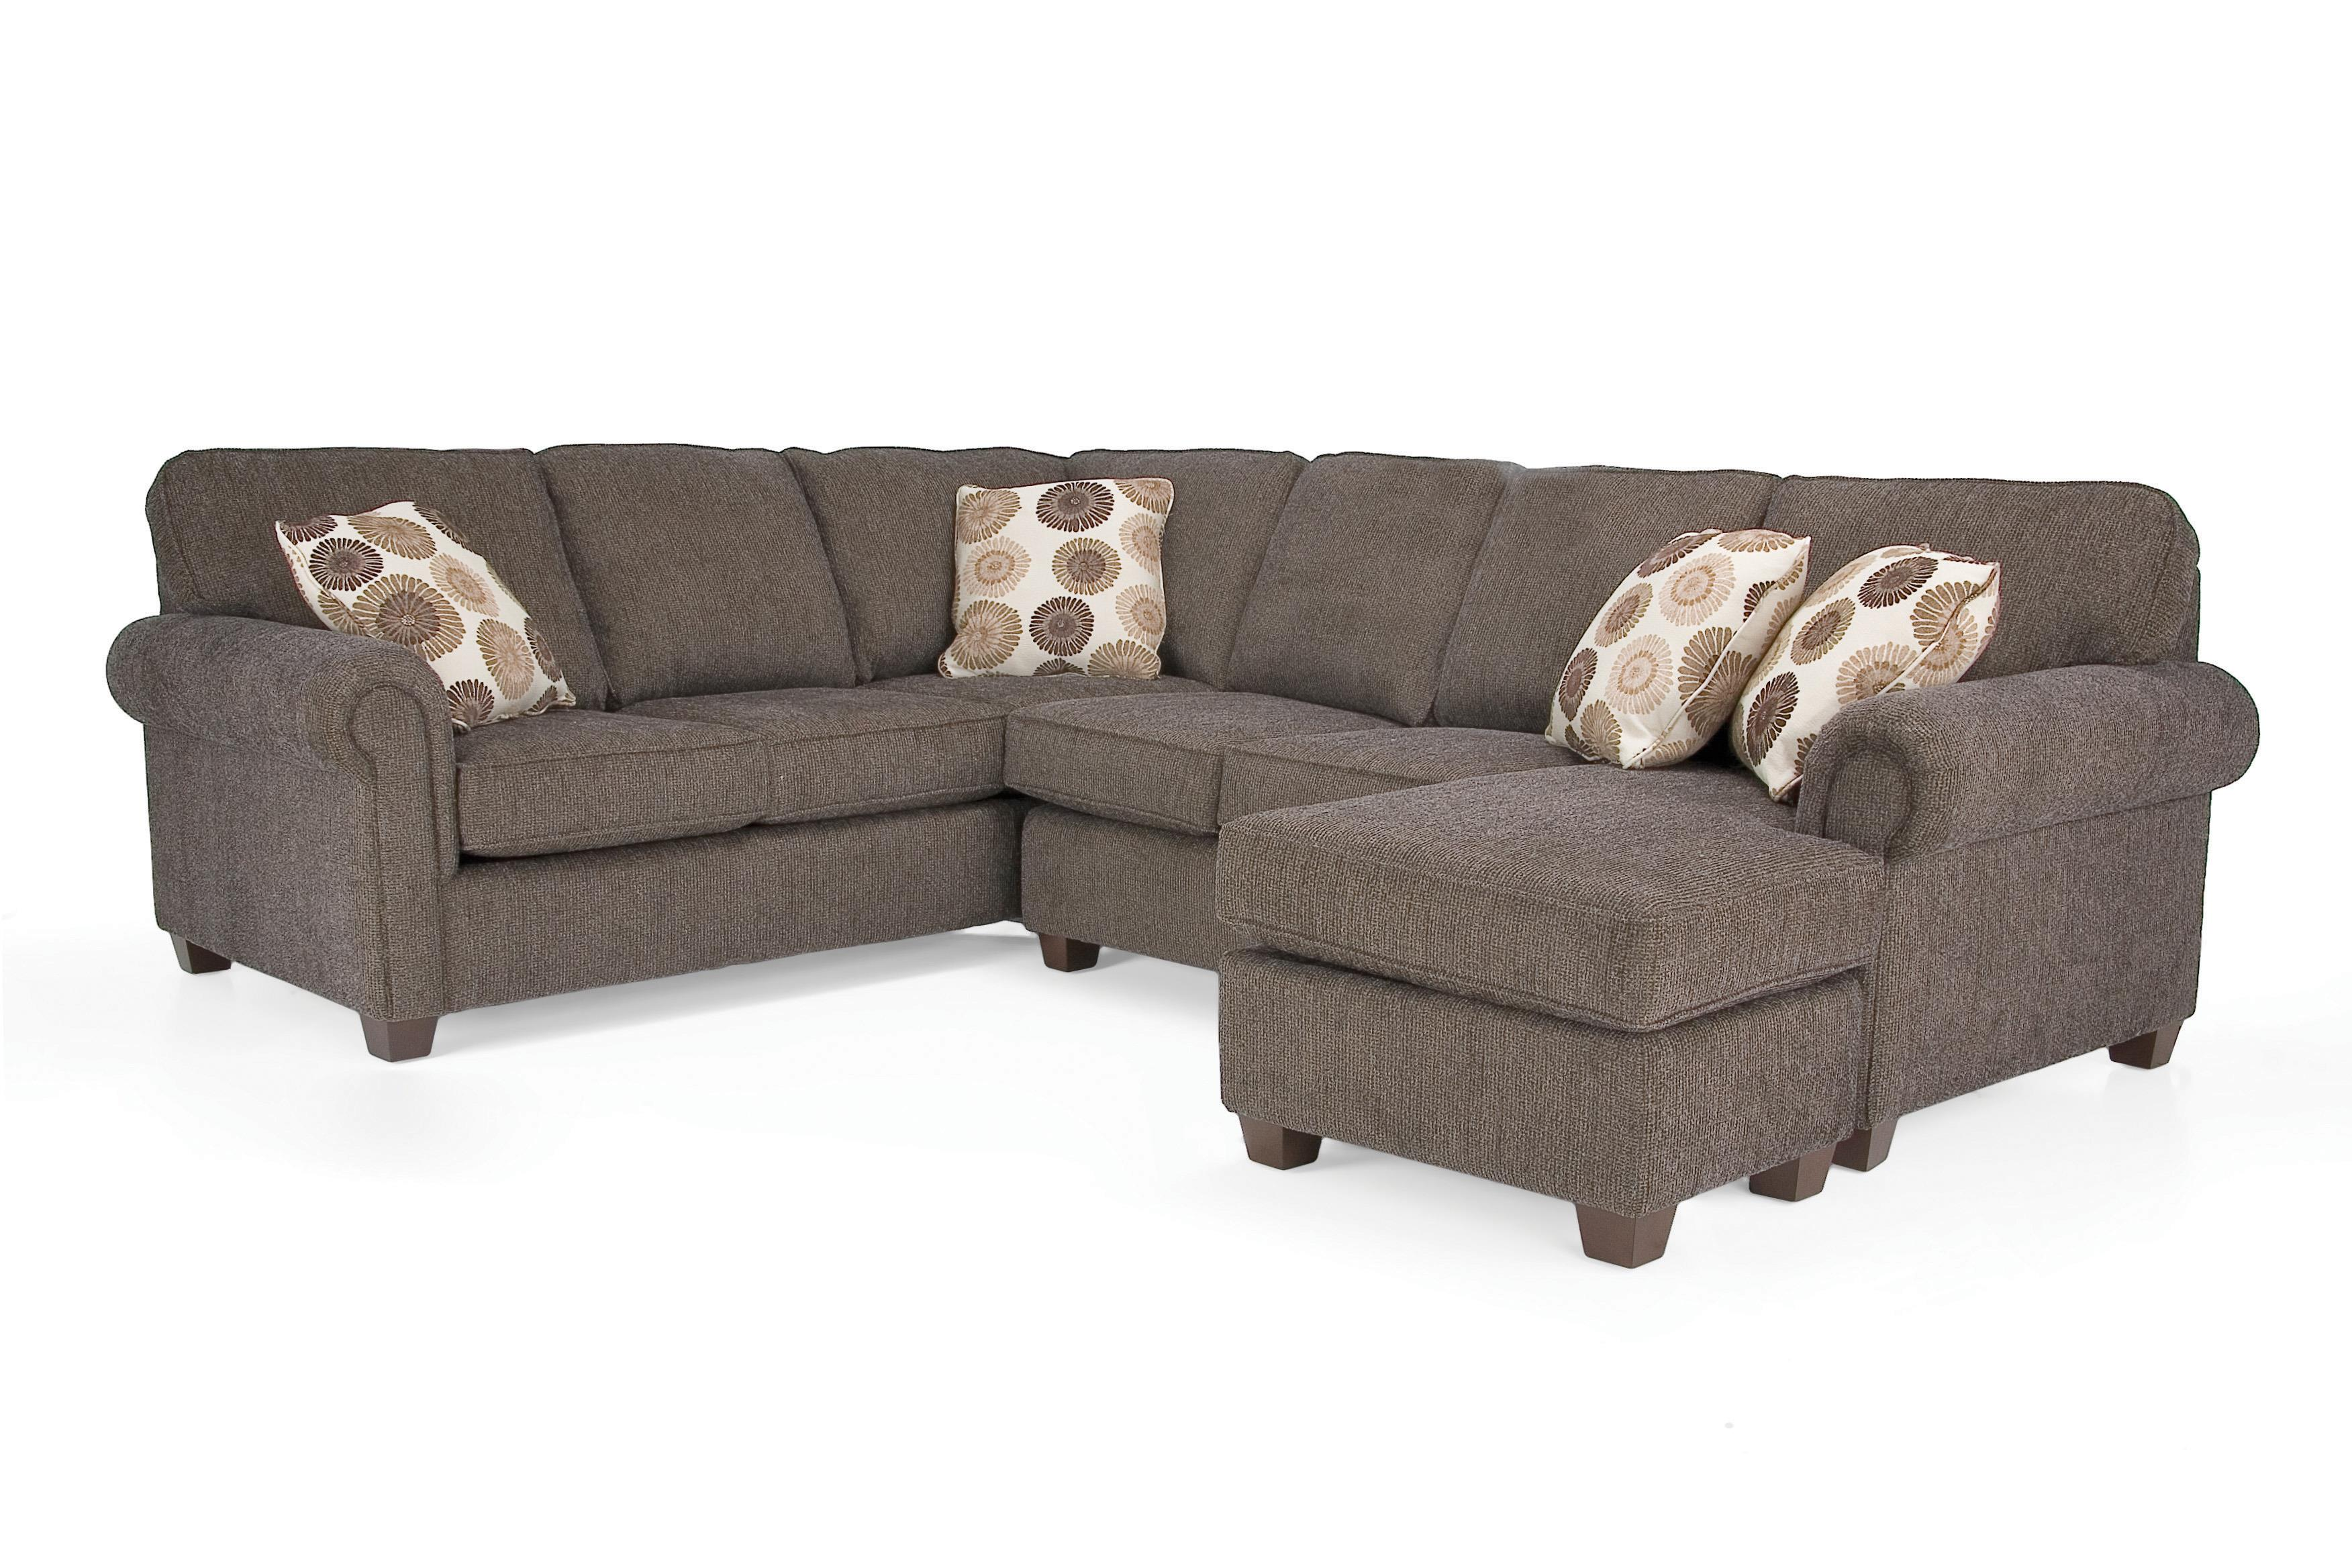 2006 Sectional Sectional Sofa Group by Decor-Rest at Johnny Janosik